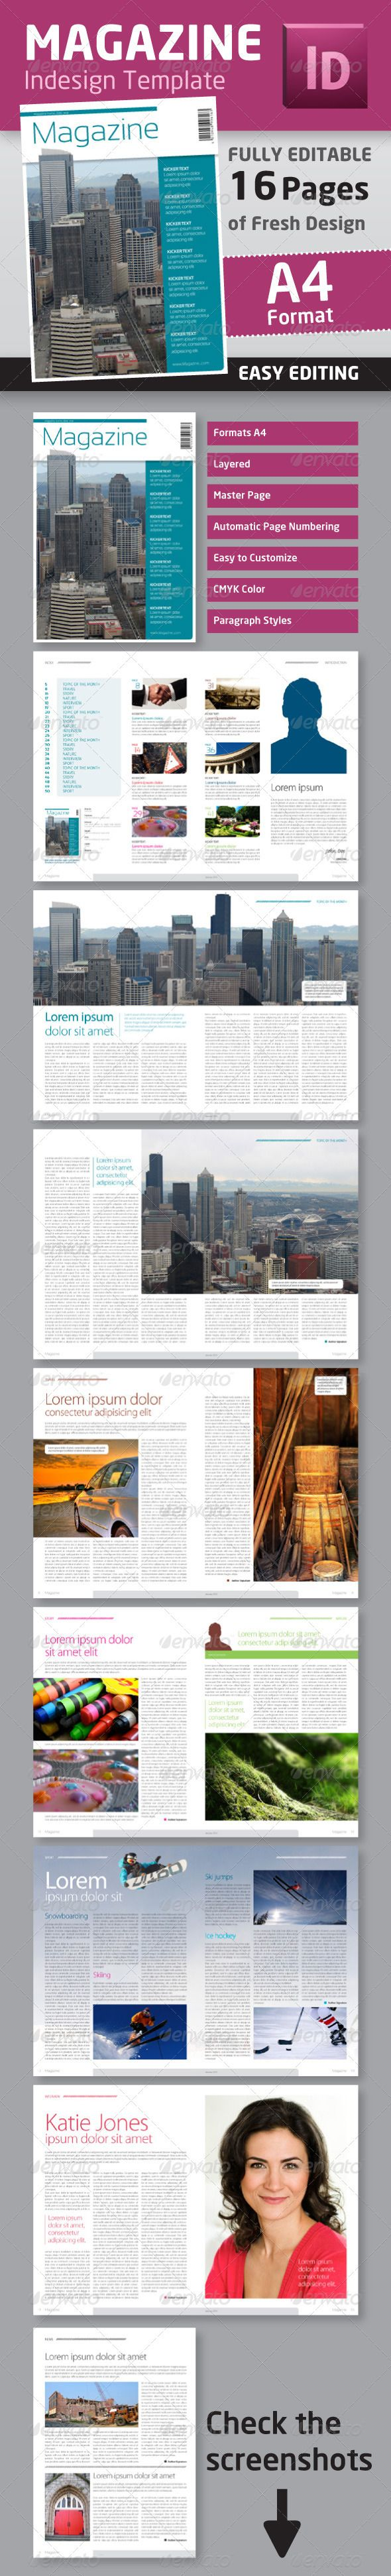 Indesign Magazine Template In A Format  Indesign Magazine